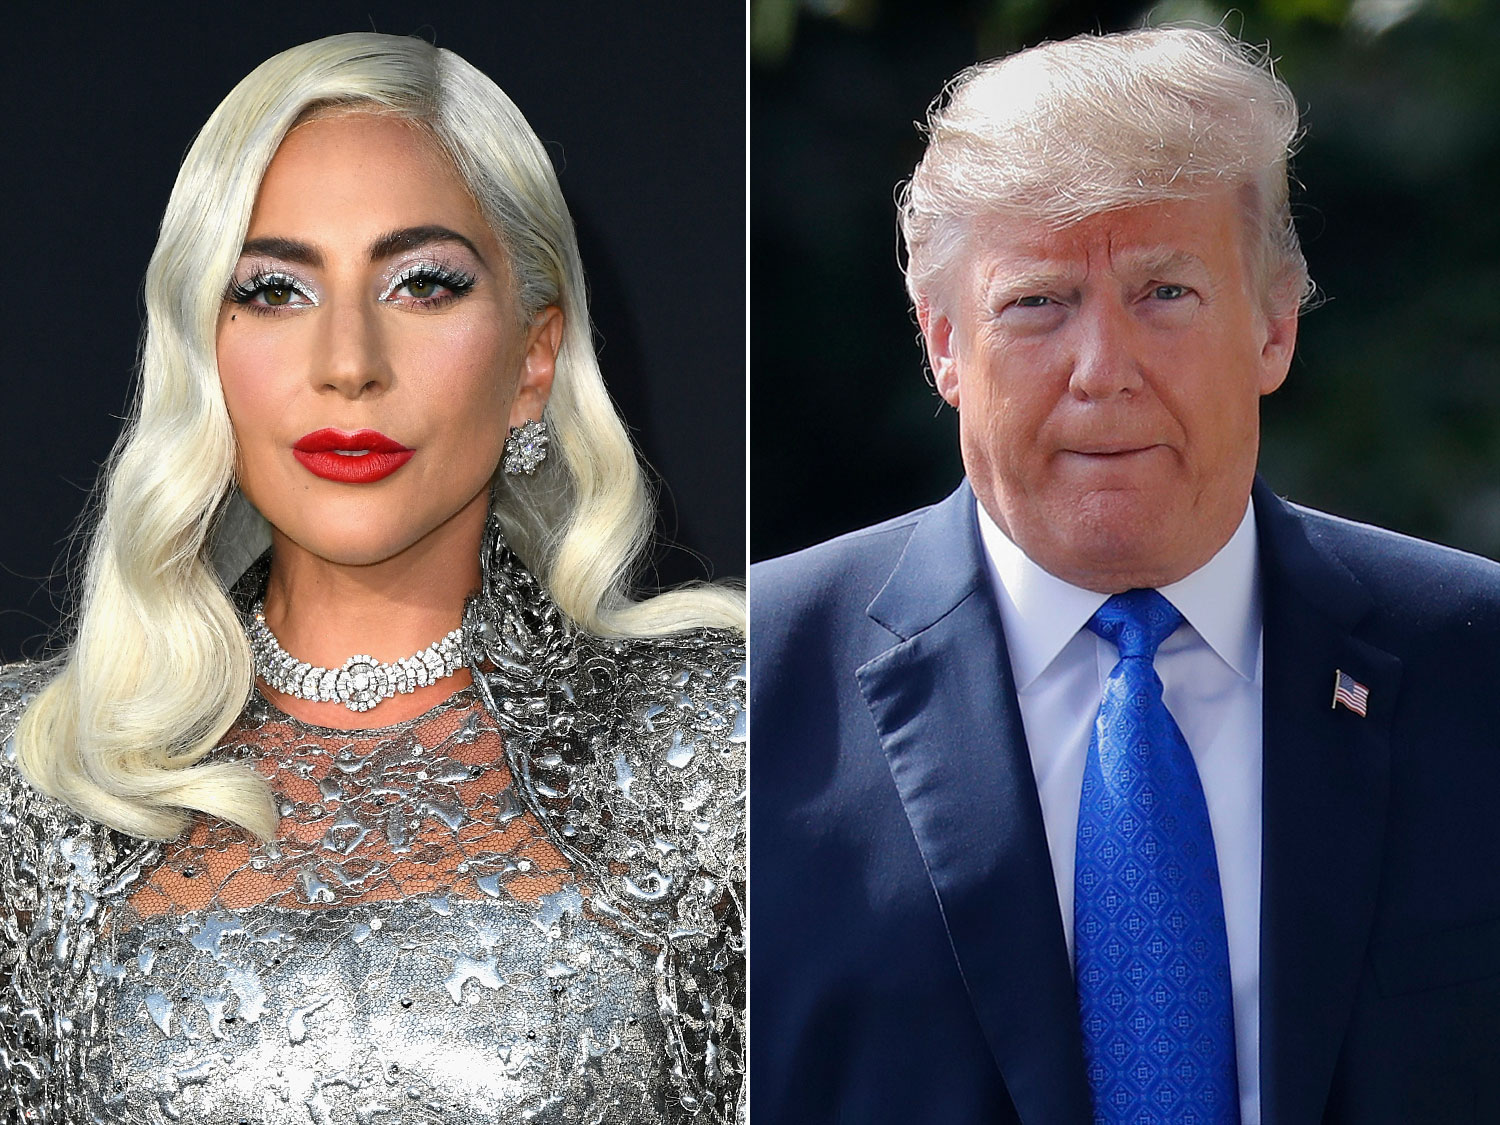 lady-gaga-slams-fool-donald-trump-for-failing-everyone-in-passionate-message-about-george-floyds-murder-and-fighting-racism